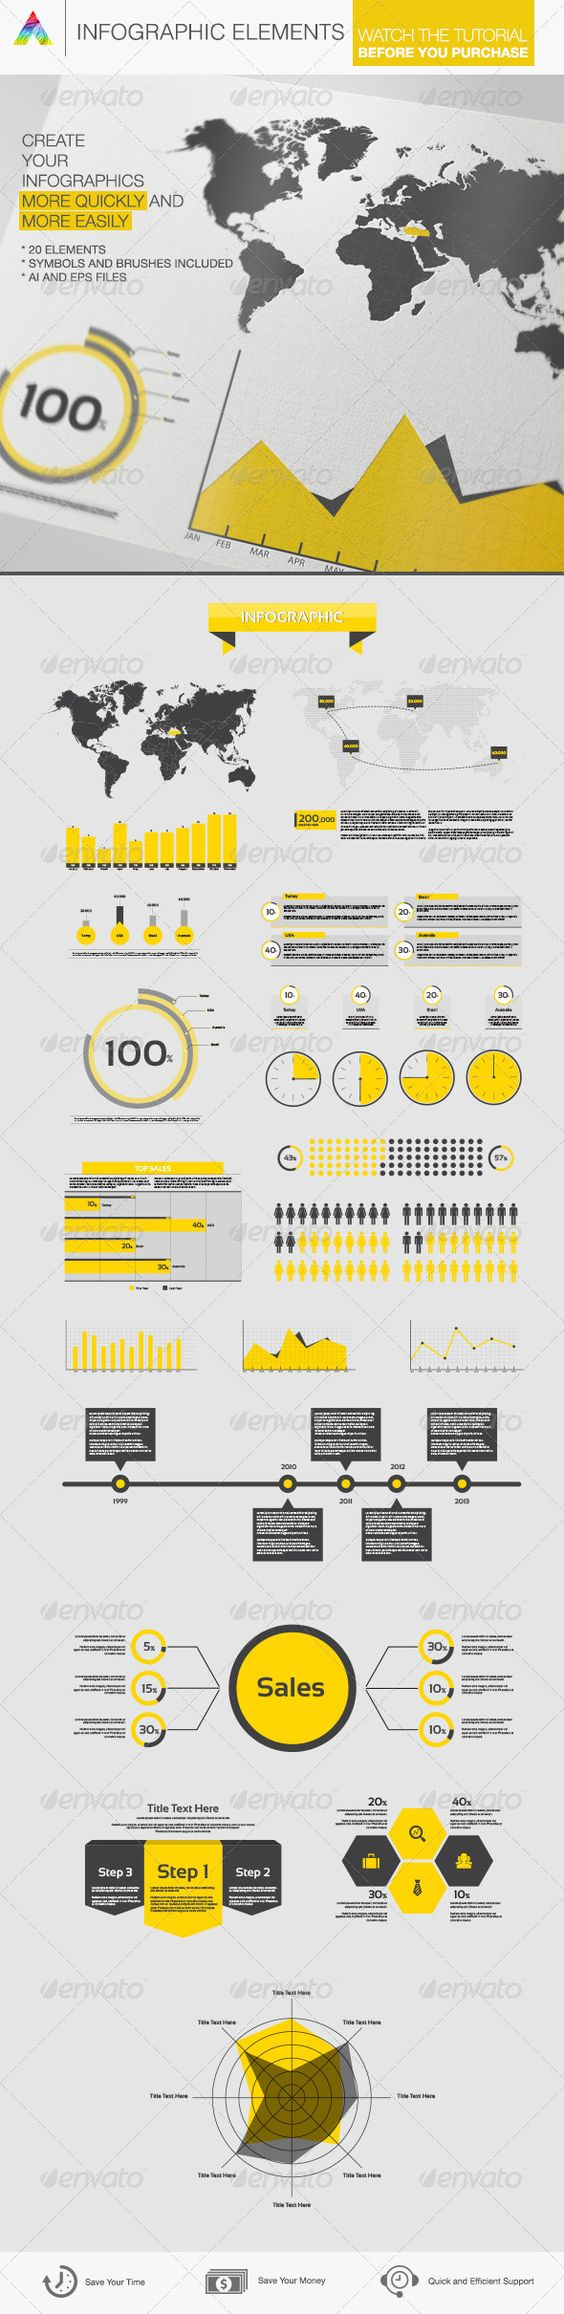 Infographic, Color text and Vector shapes on Pinterest